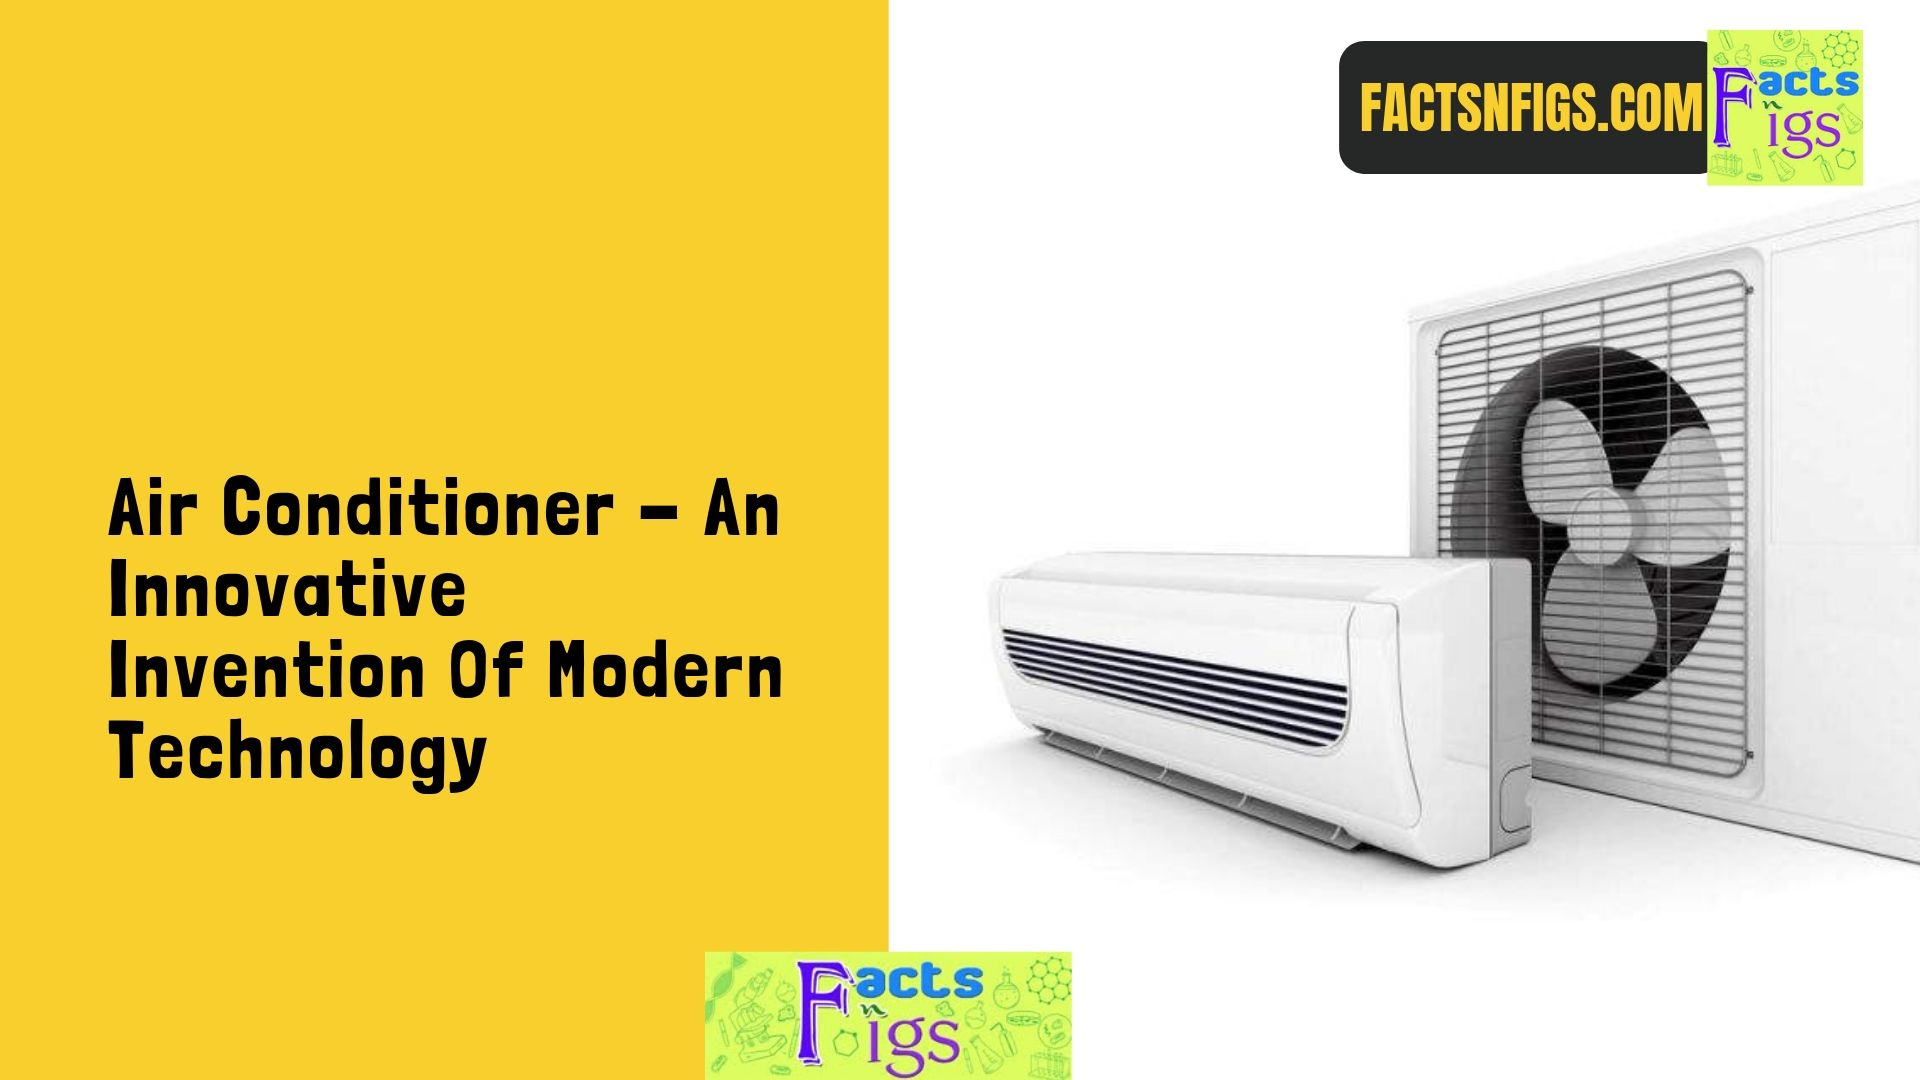 Air Conditioner – An Innovative Invention Of Modern Technology